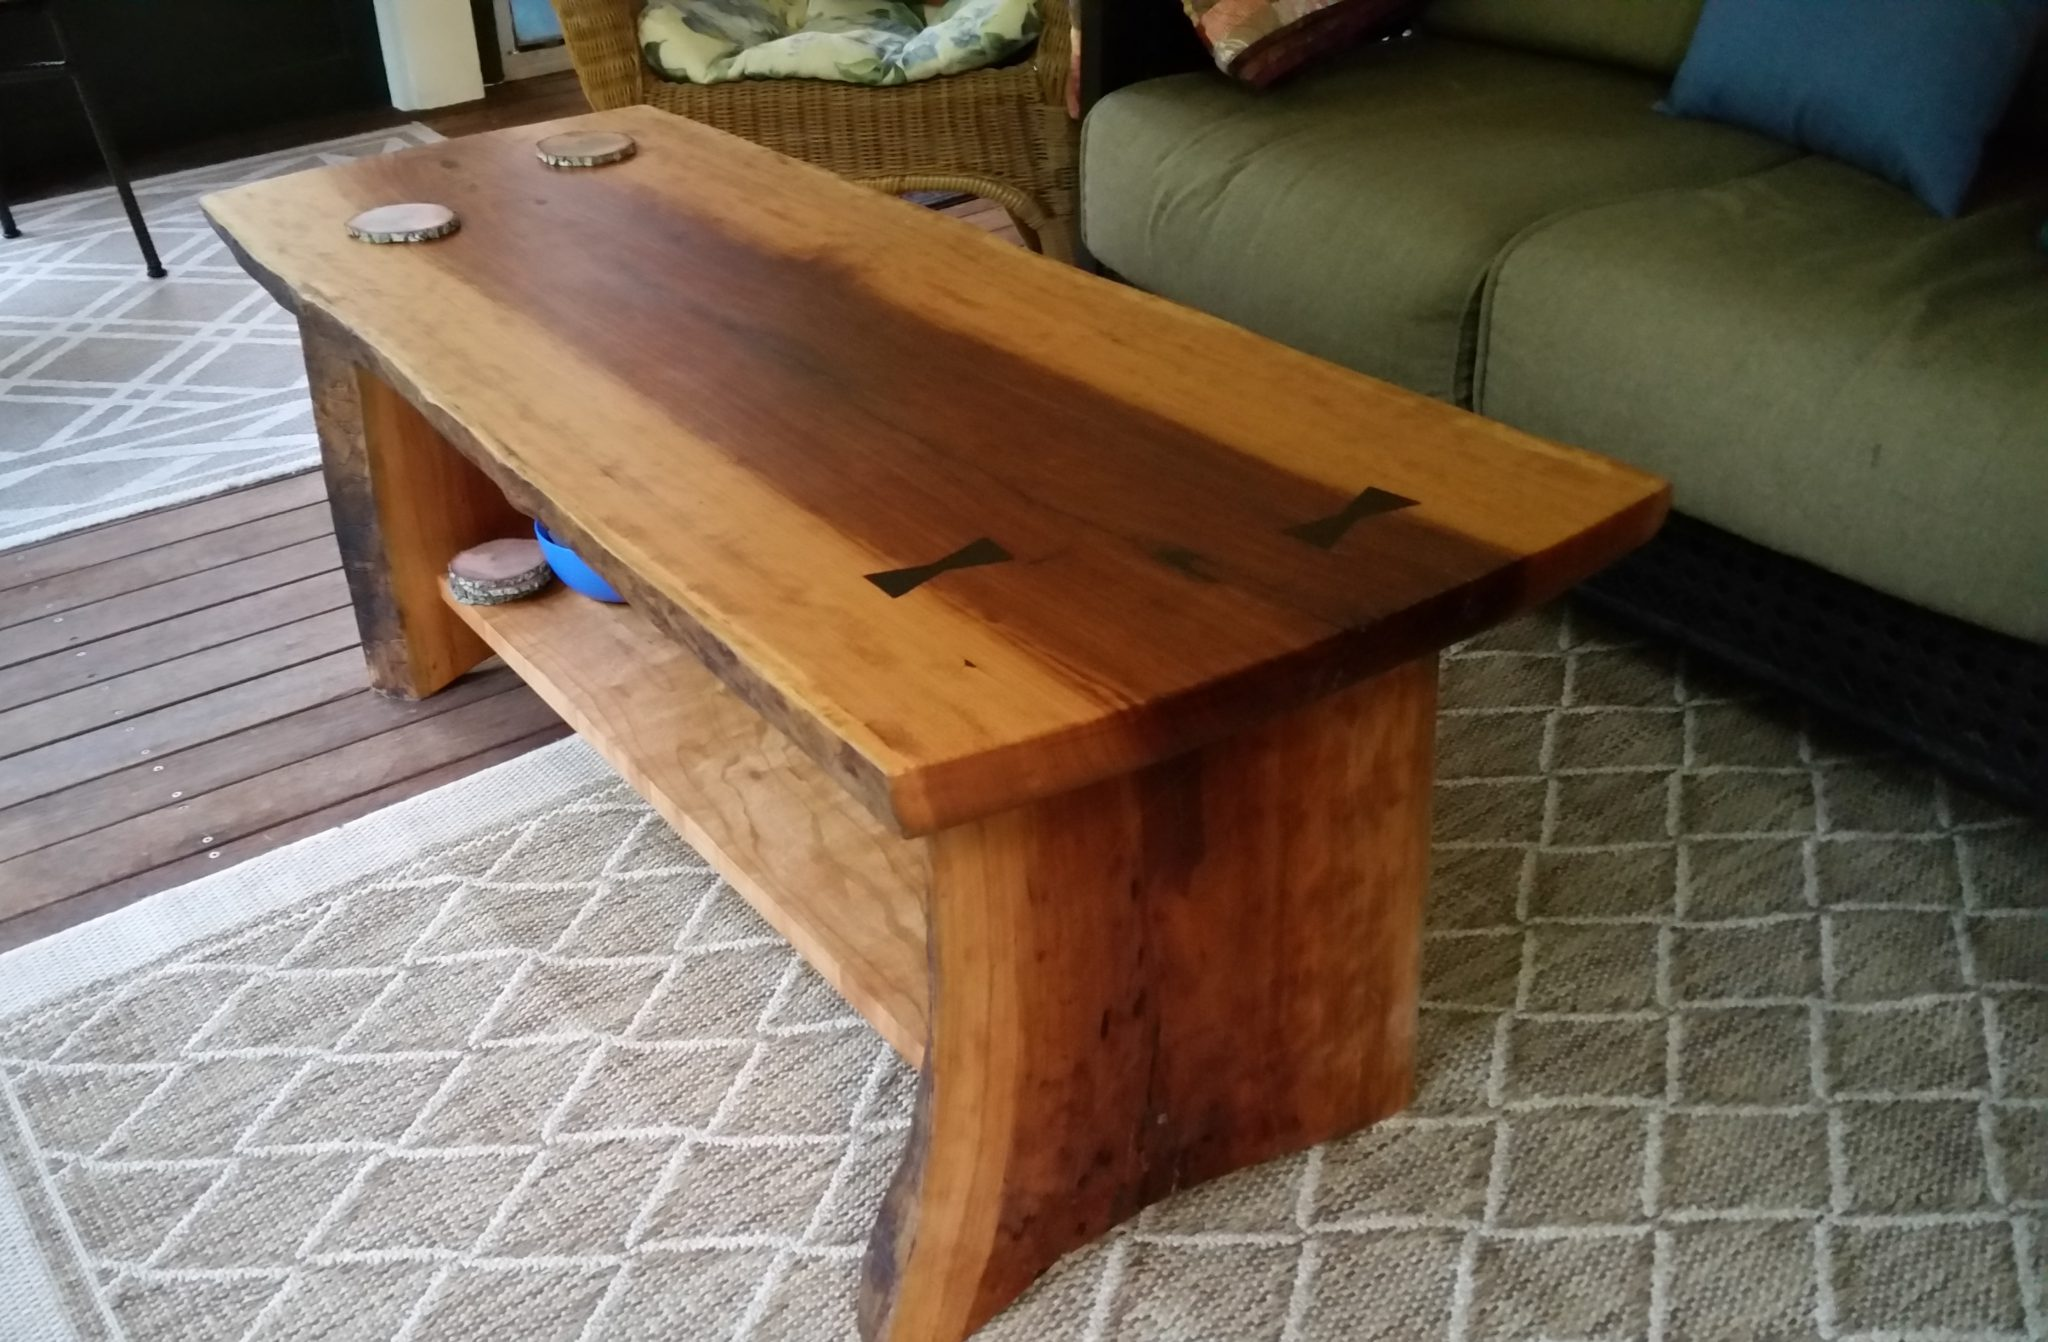 Live edge coffee table with wenge bowties inset